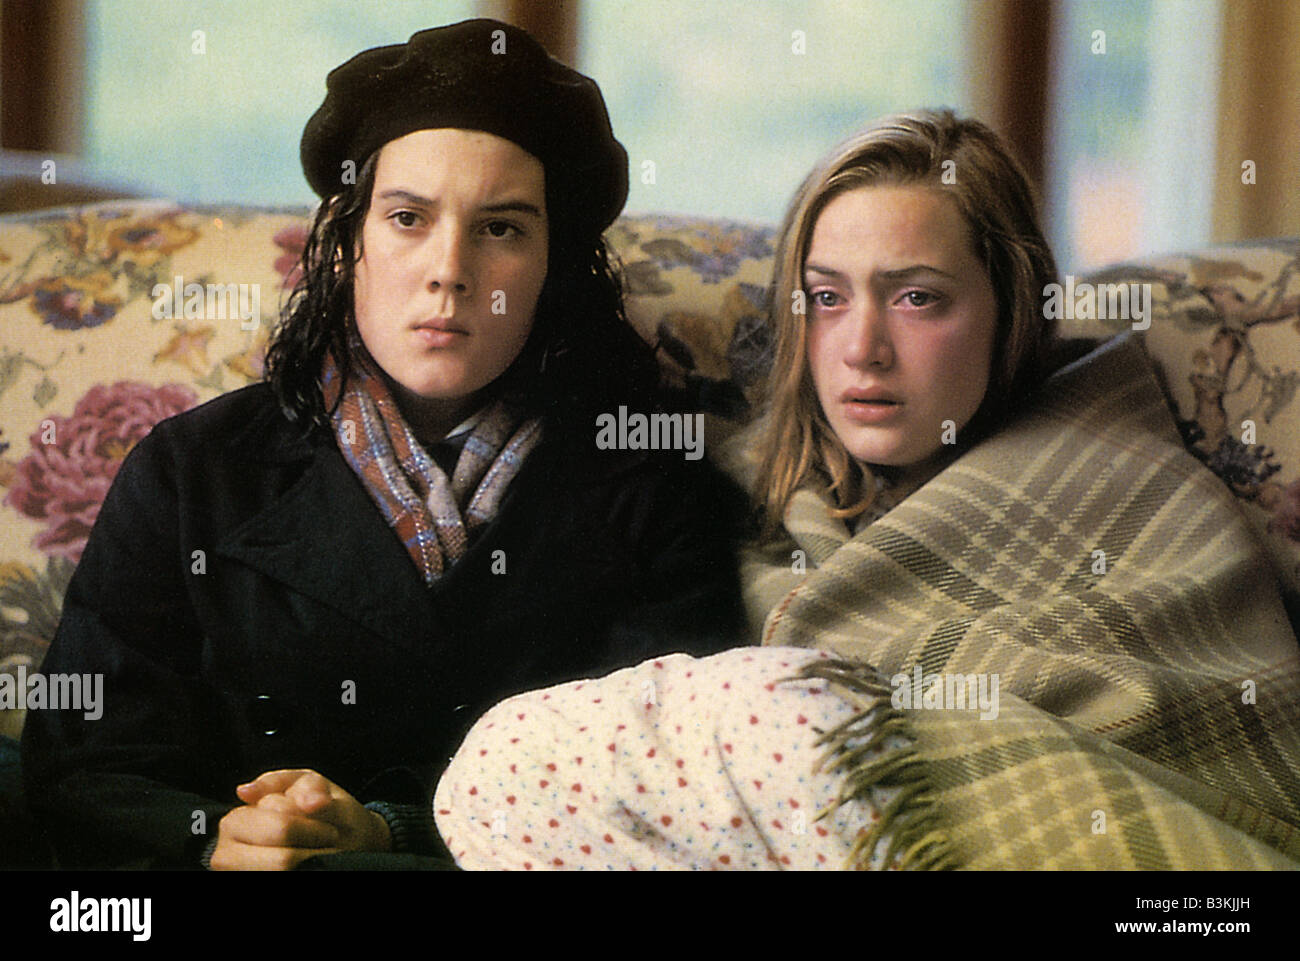 HEAVENLY CREATURES 1964 Buena Vista film with Kate Winslet at right and Melanie Lynskey - Stock Image